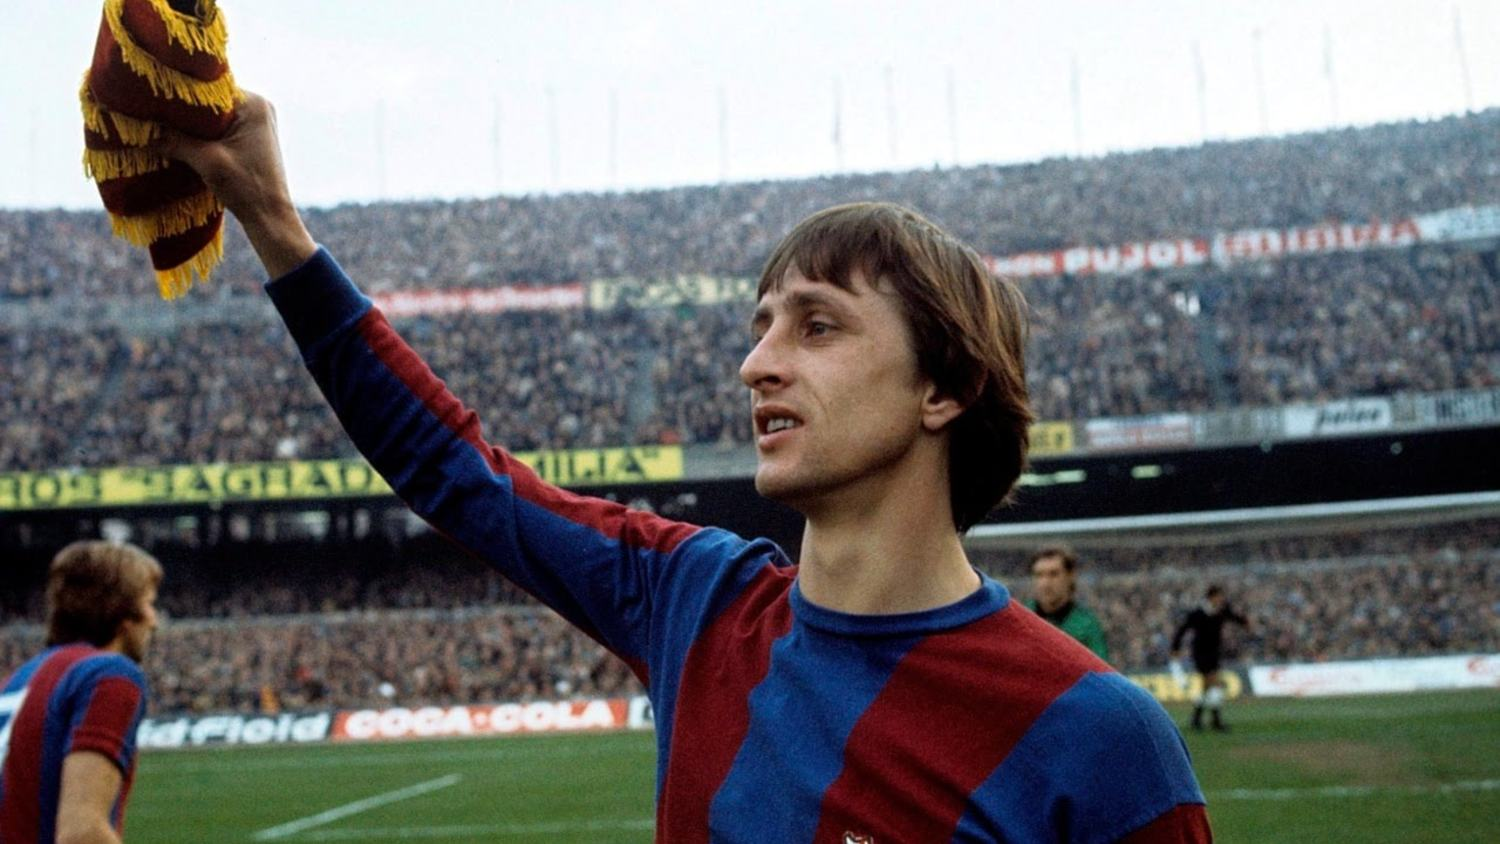 Johan Cruyff: A Legend on the Field and Touchline